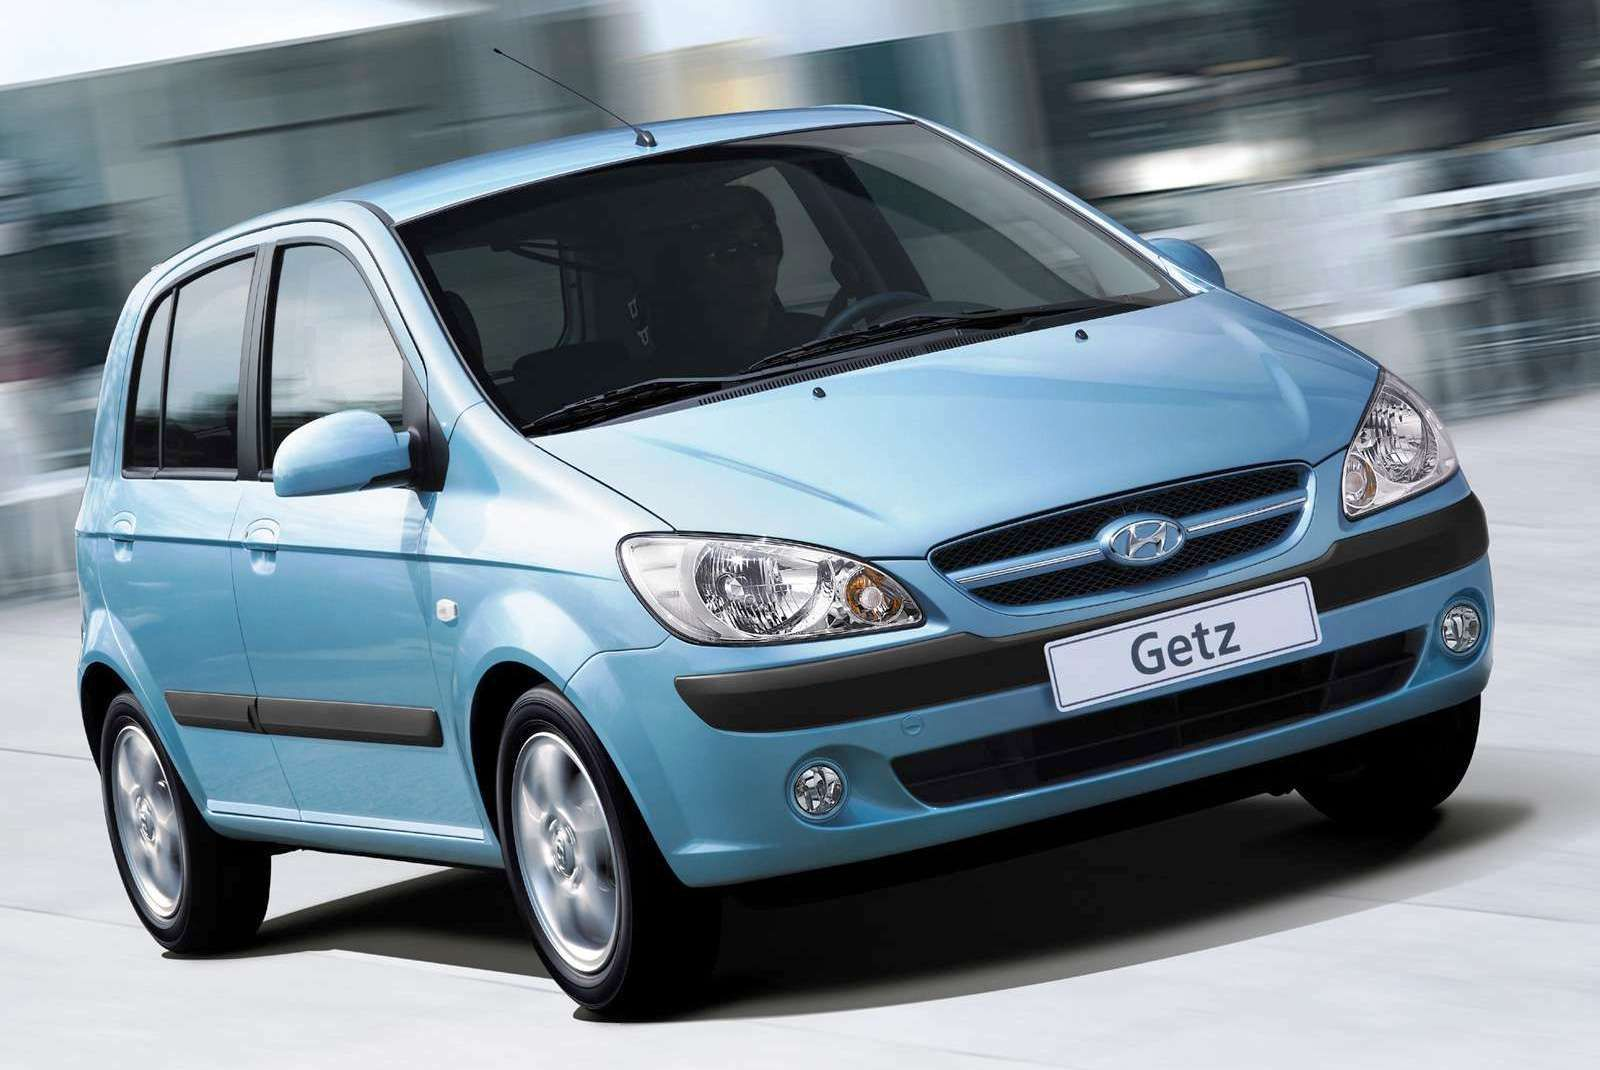 The Getz is one of Hyundai's most Popular Models https